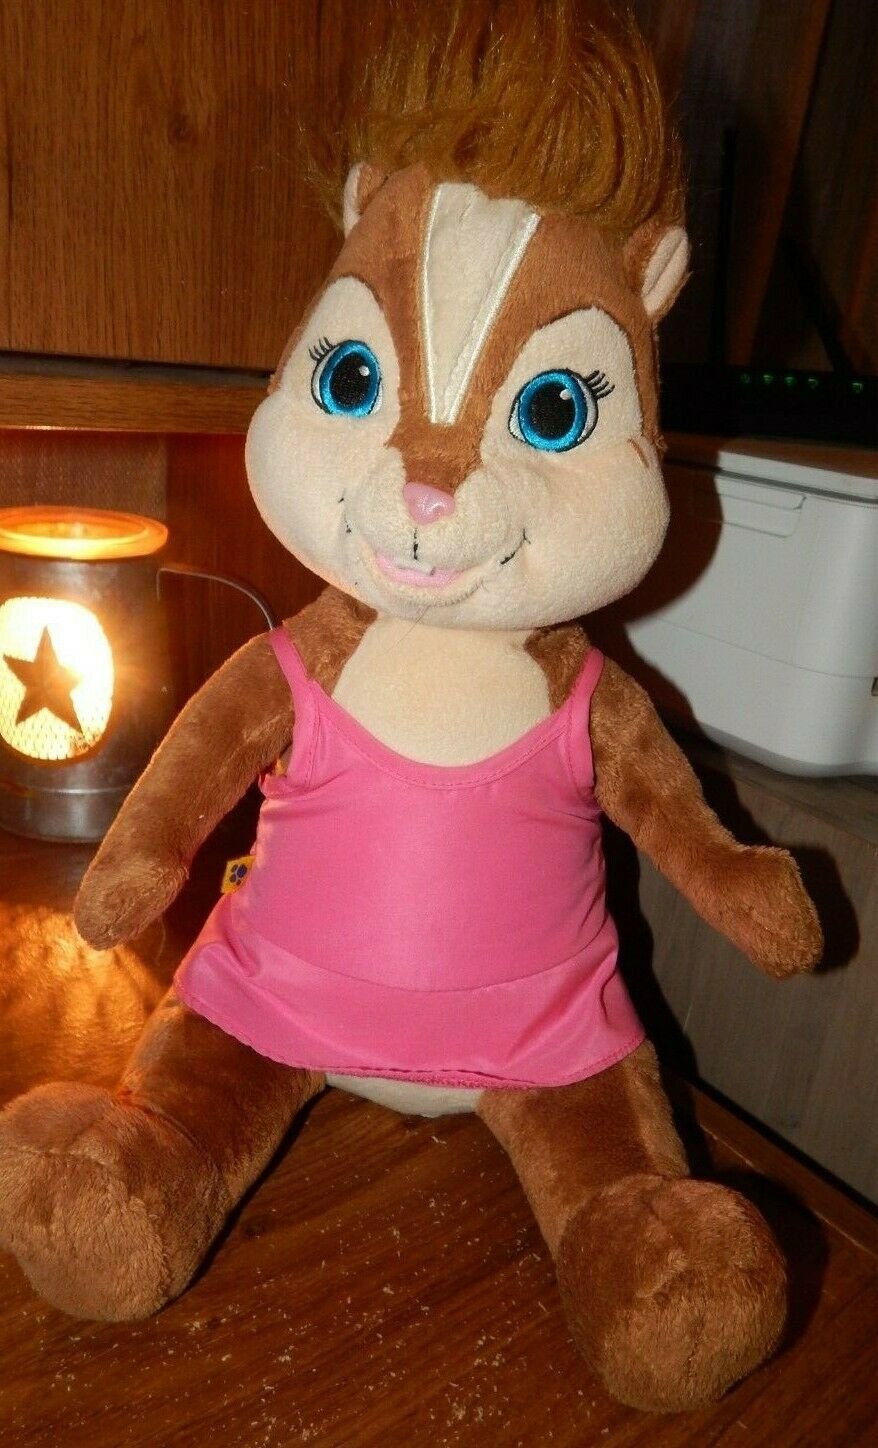 Build A Bear Brittany Plush From Alvin And The Chipmunks Stuffed Animal toy 14